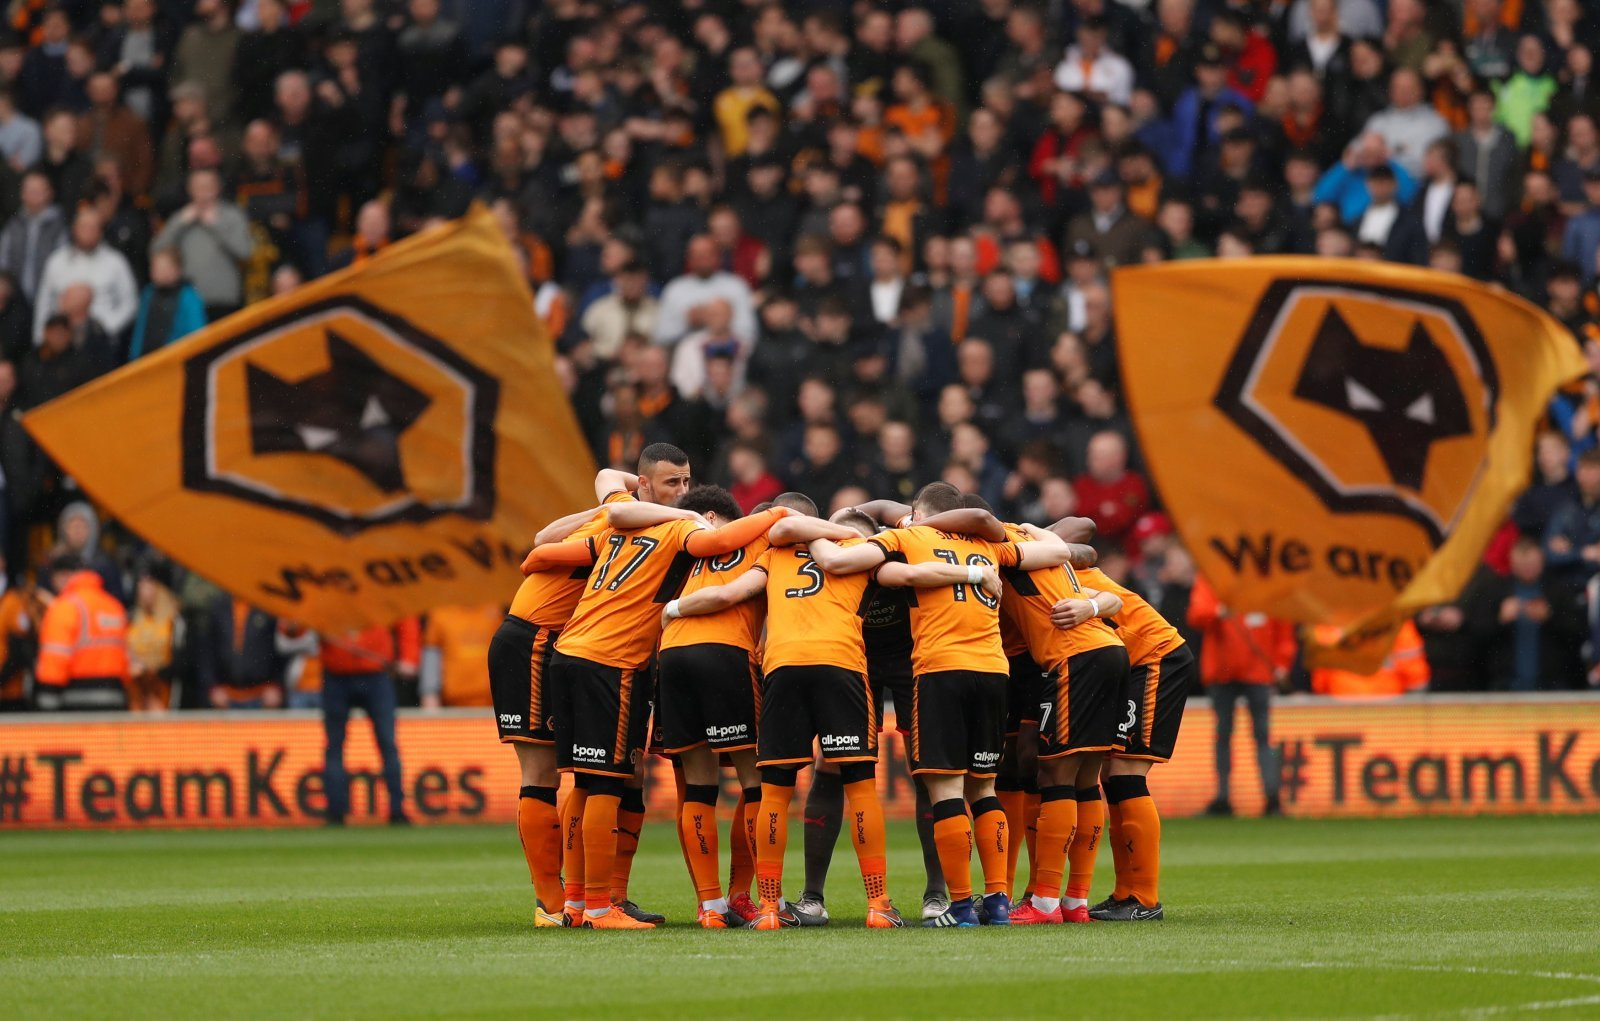 Wolves: Fans loved compilation video of season highlights so far